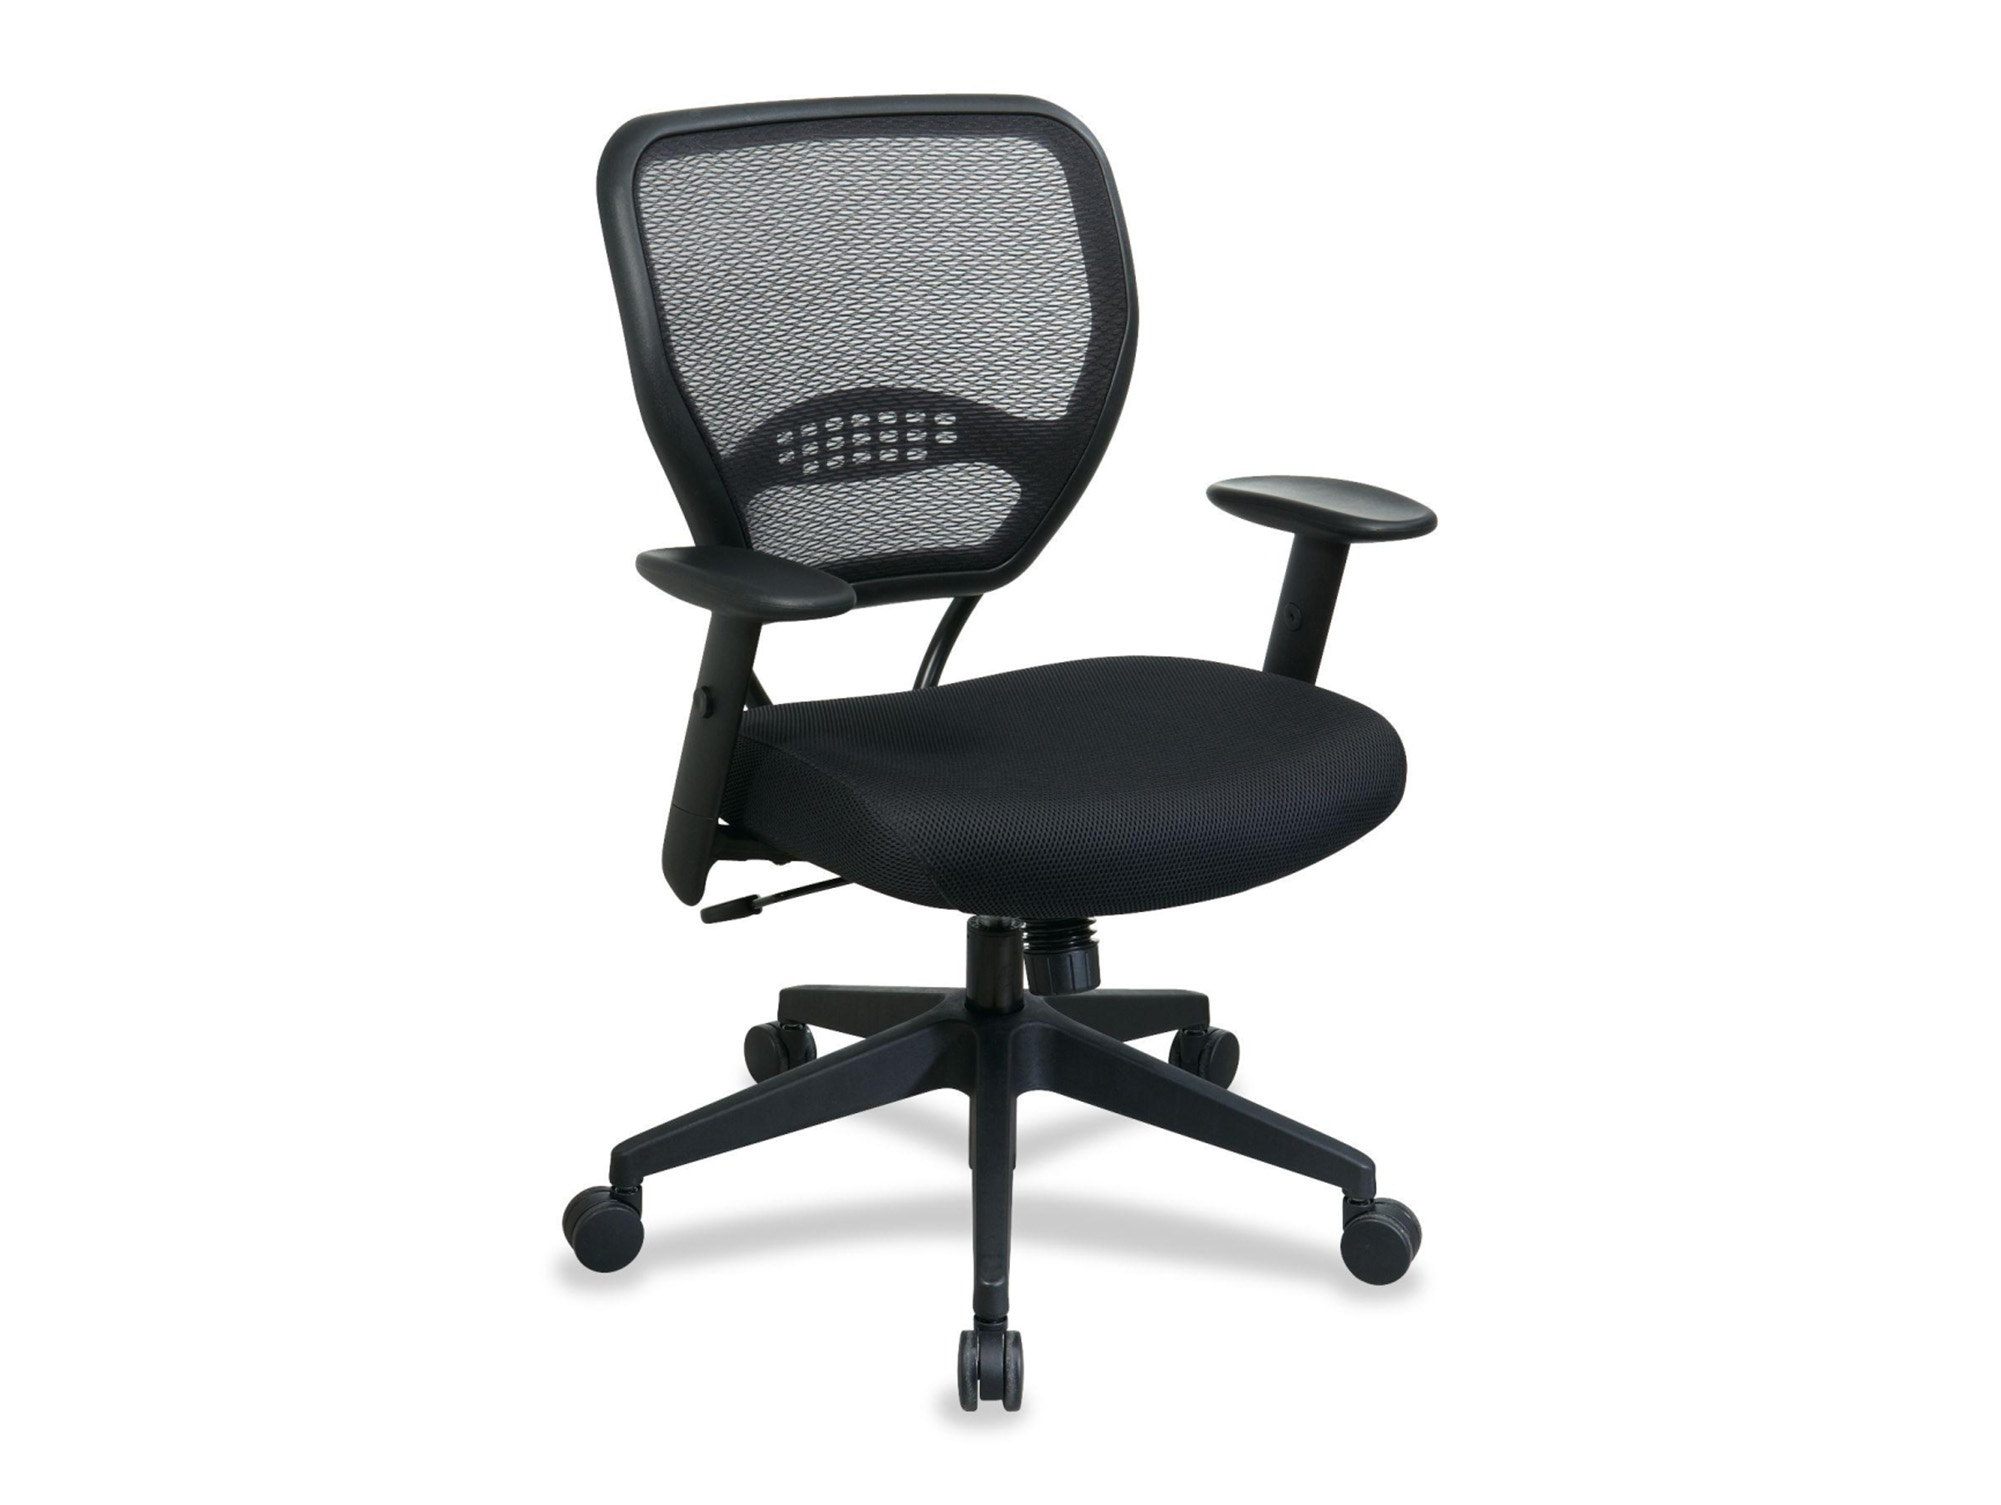 Office Mesh Seating Ergonomic Mesh Office Chair - Office Task Chairs - Chairs